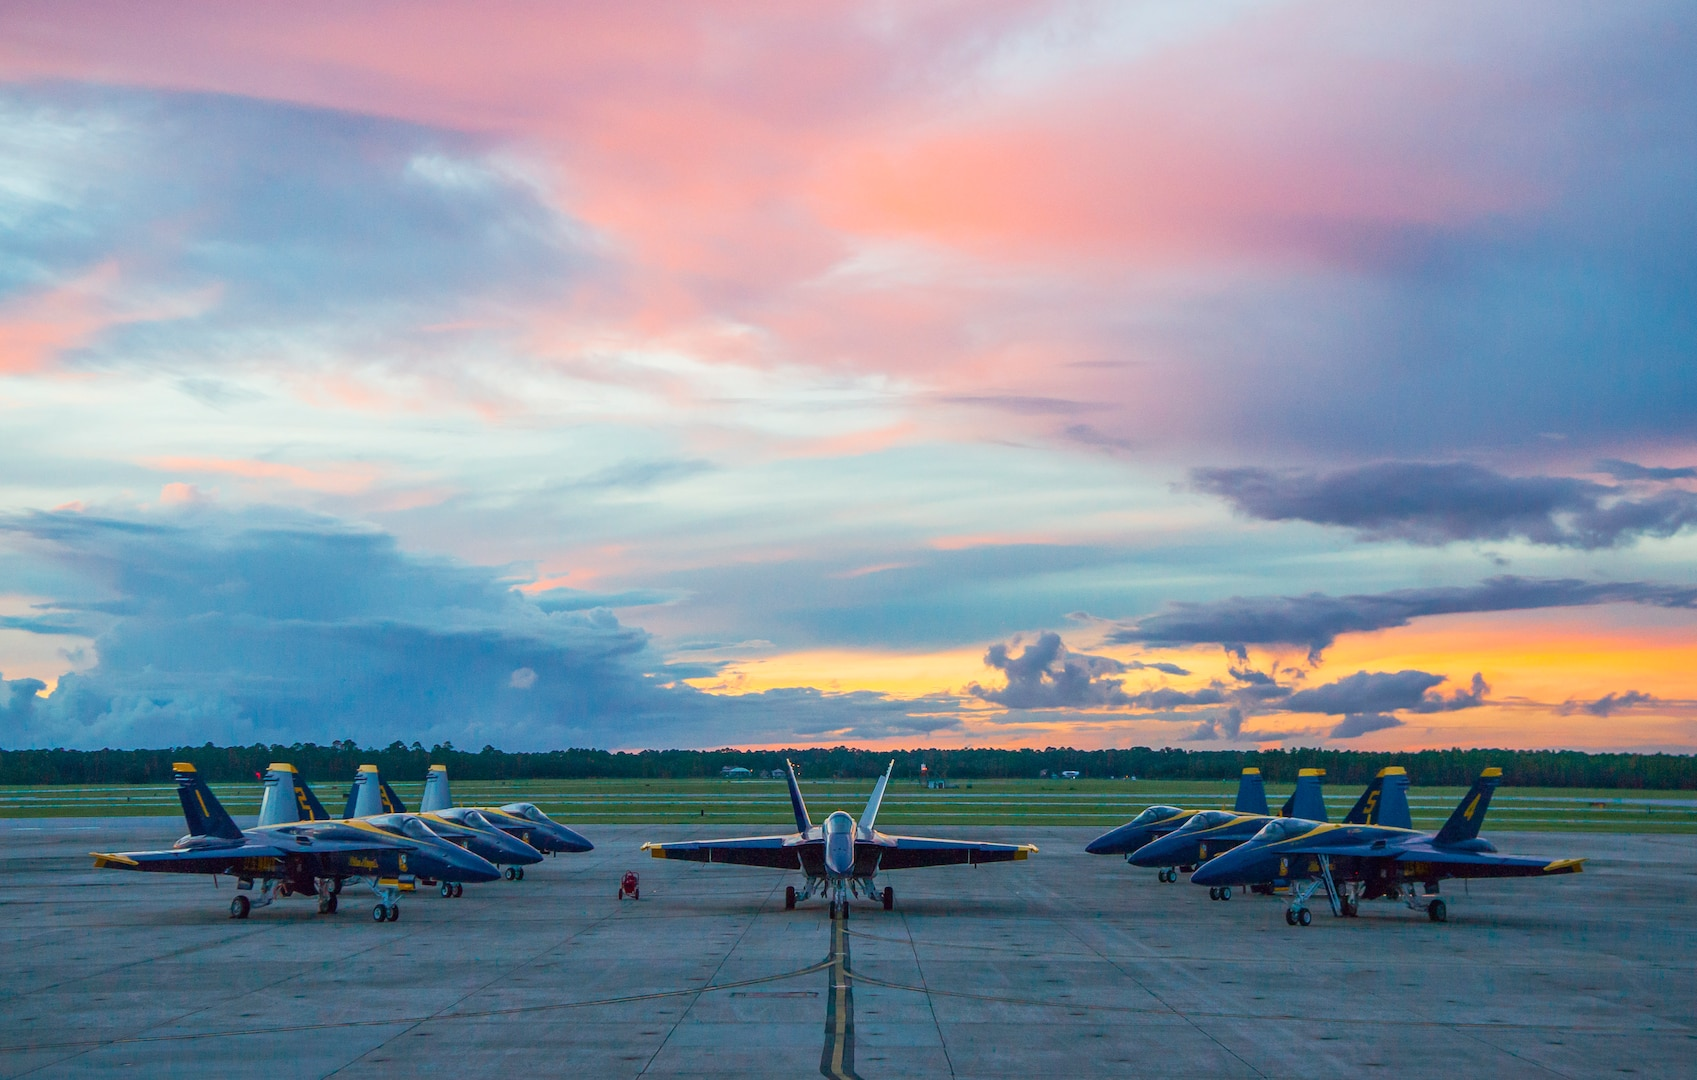 Seven blue fighter jets are parked in front of a dramatic evening sky